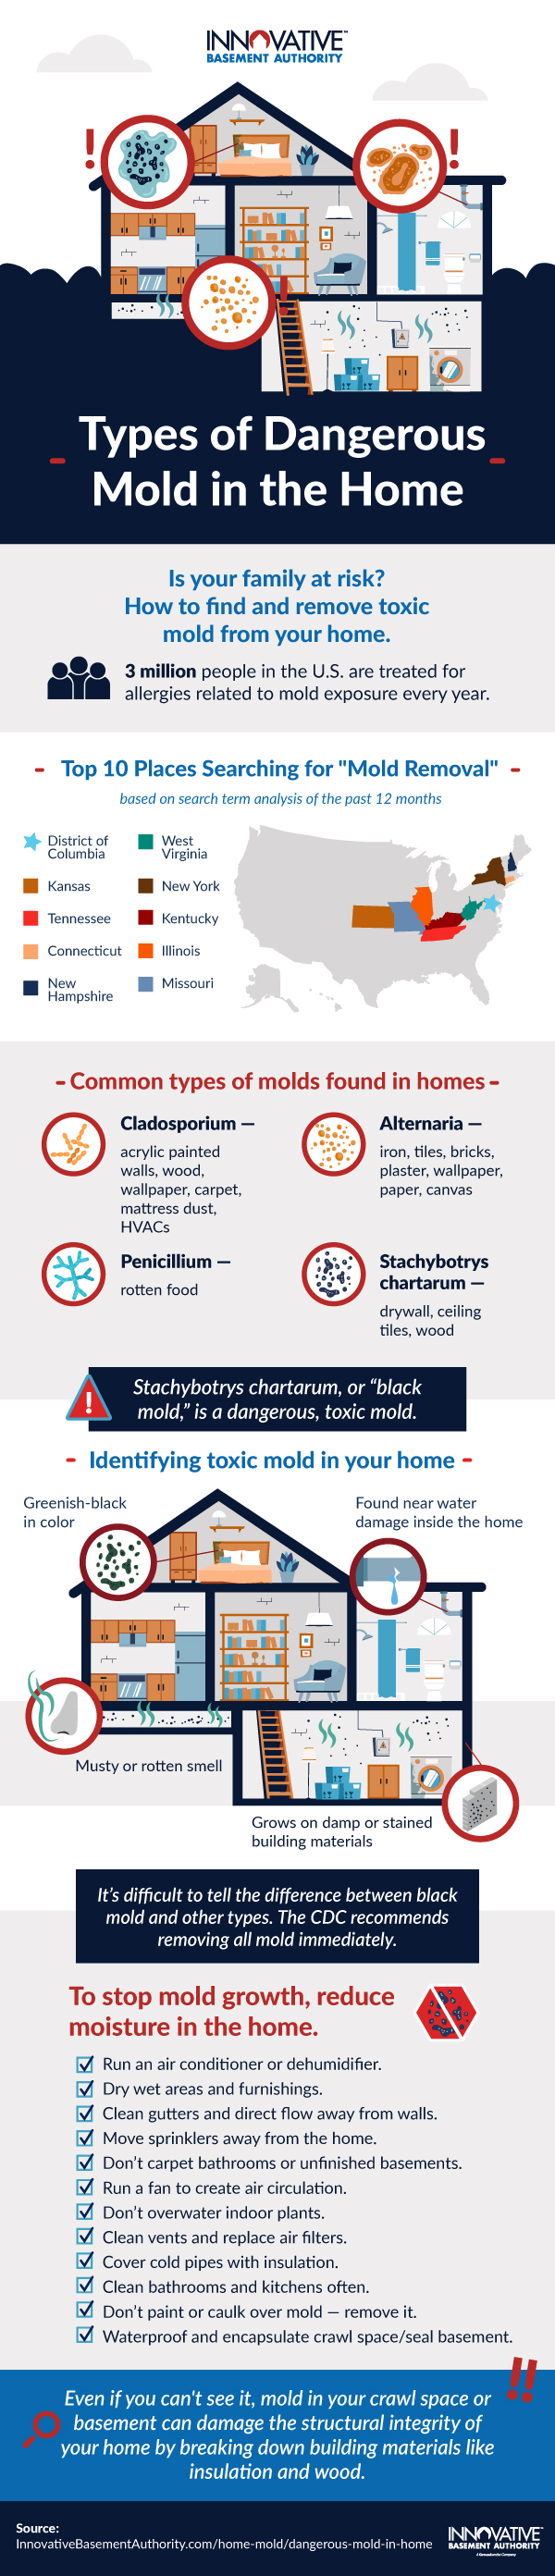 Different Types of Dangerous Mold in Our Homes